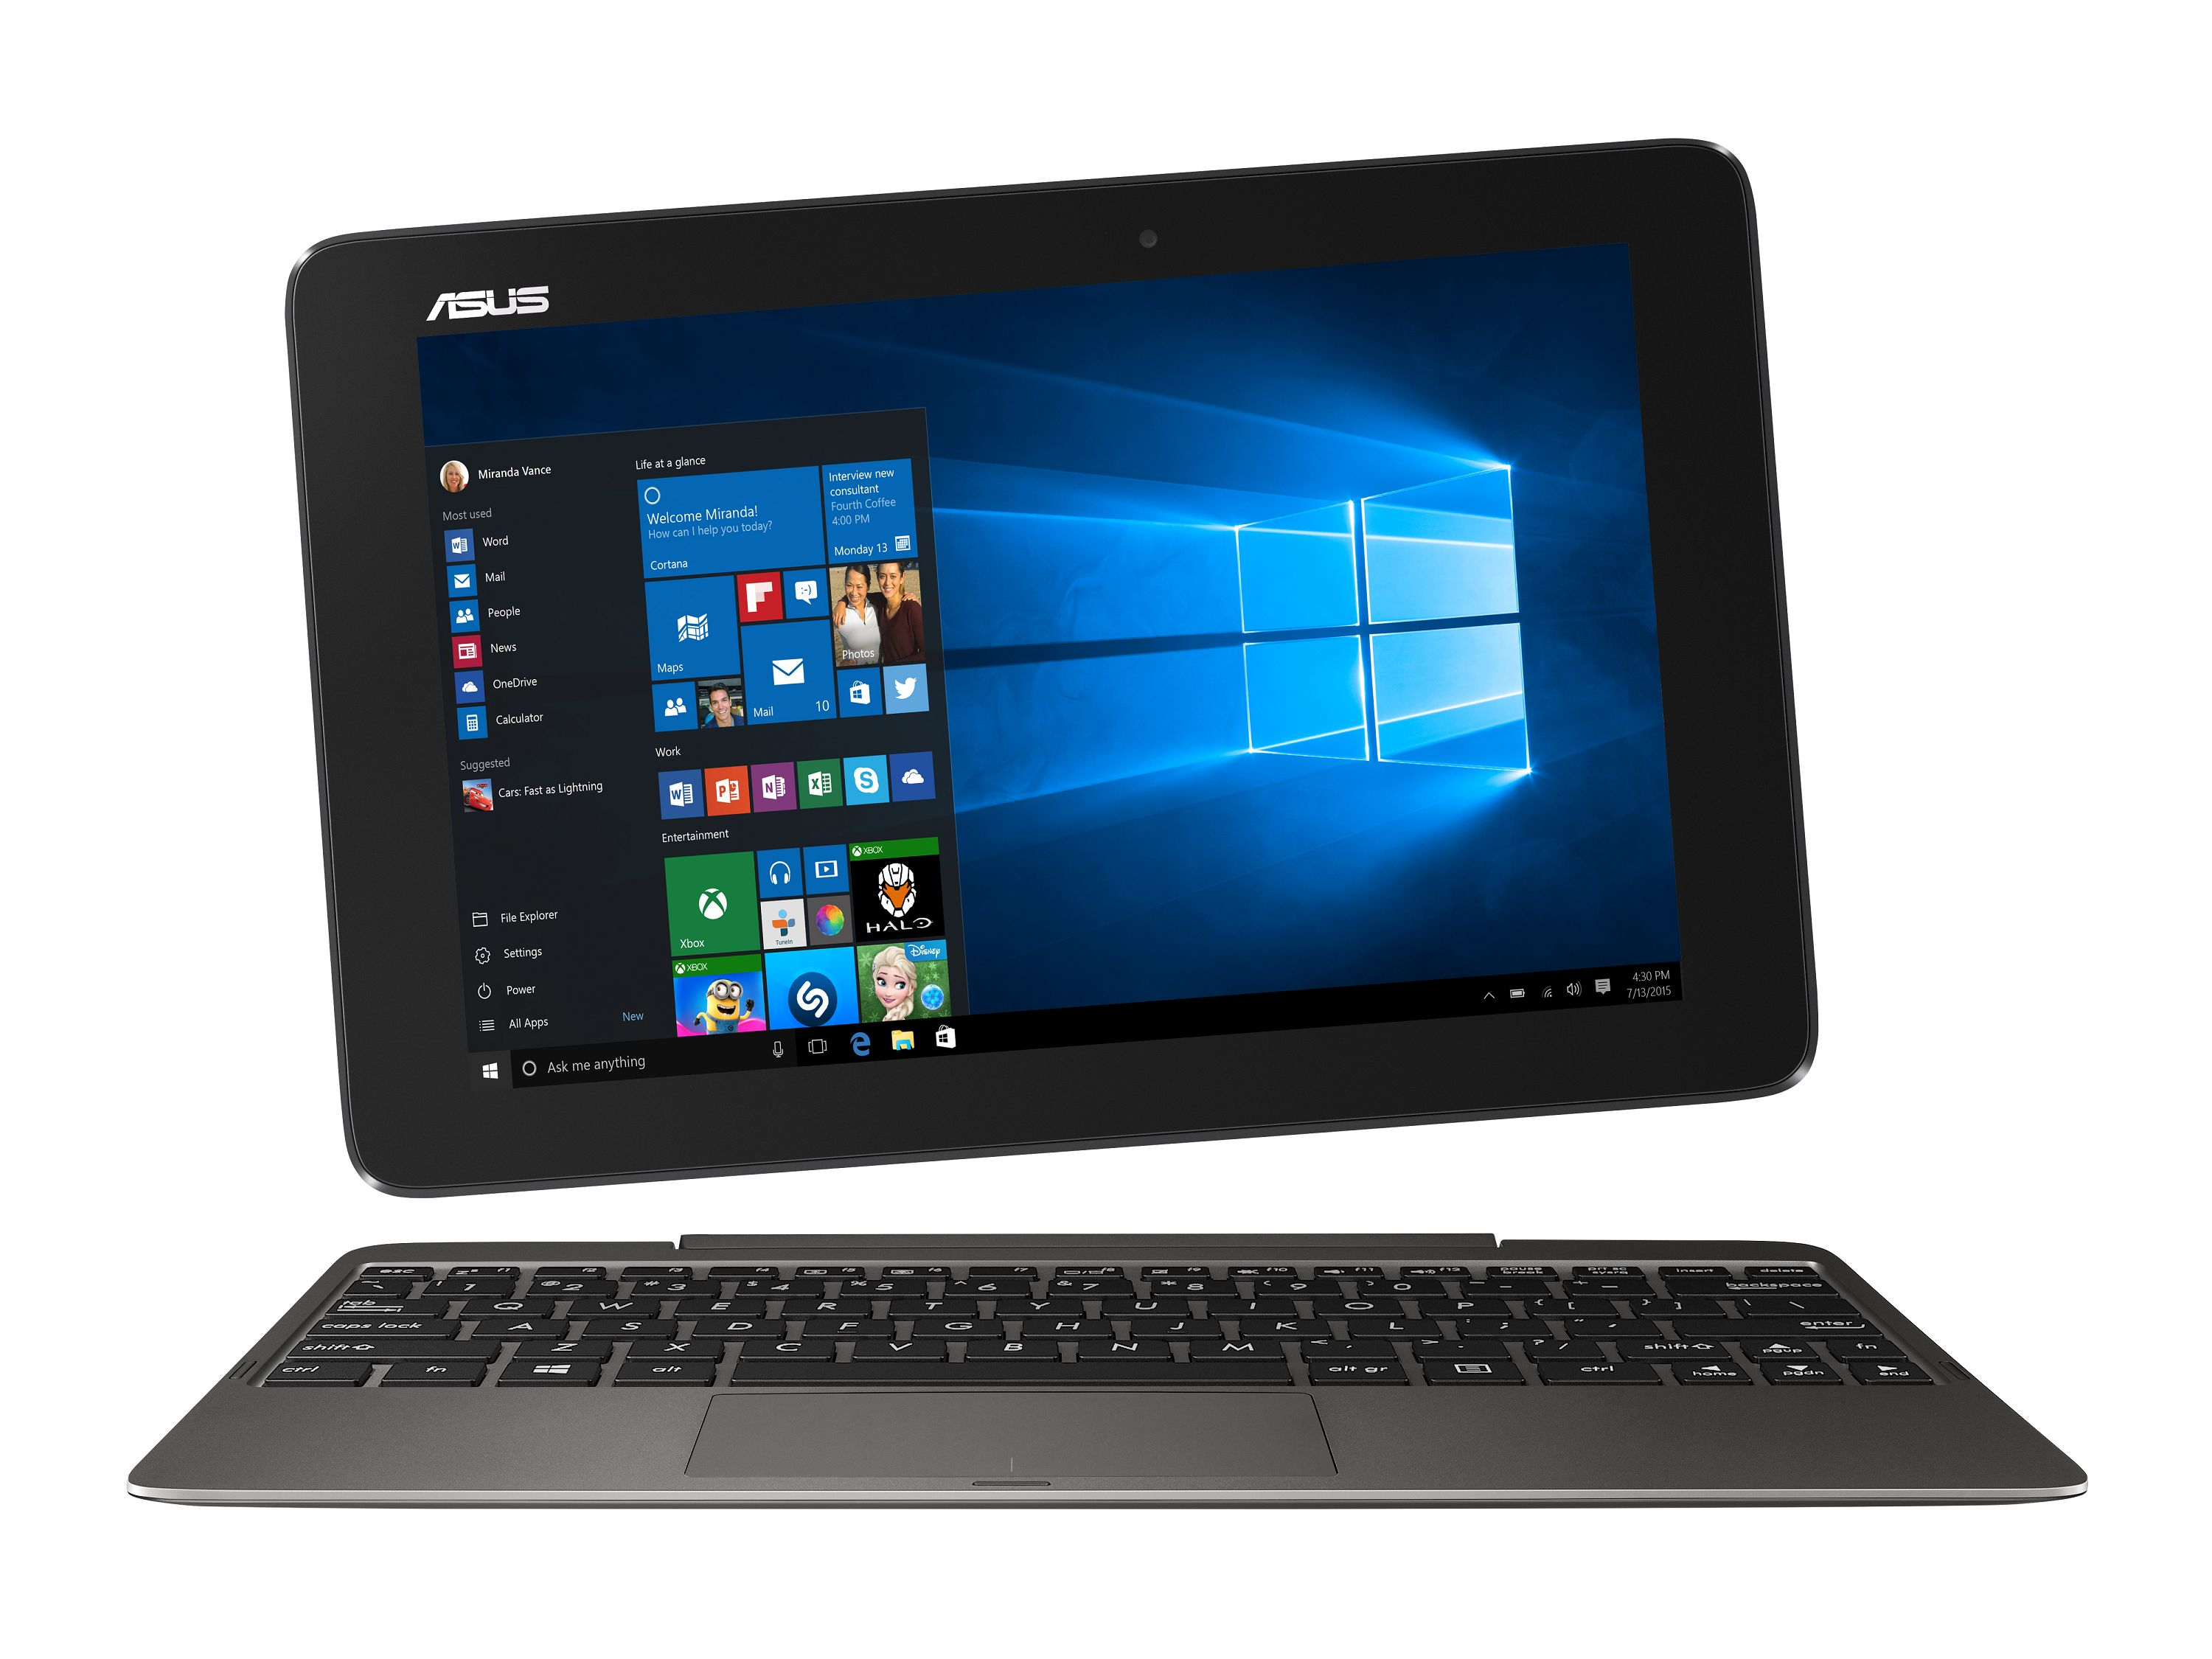 ASUS Transformer Book T100HA-FU030T (Grau)